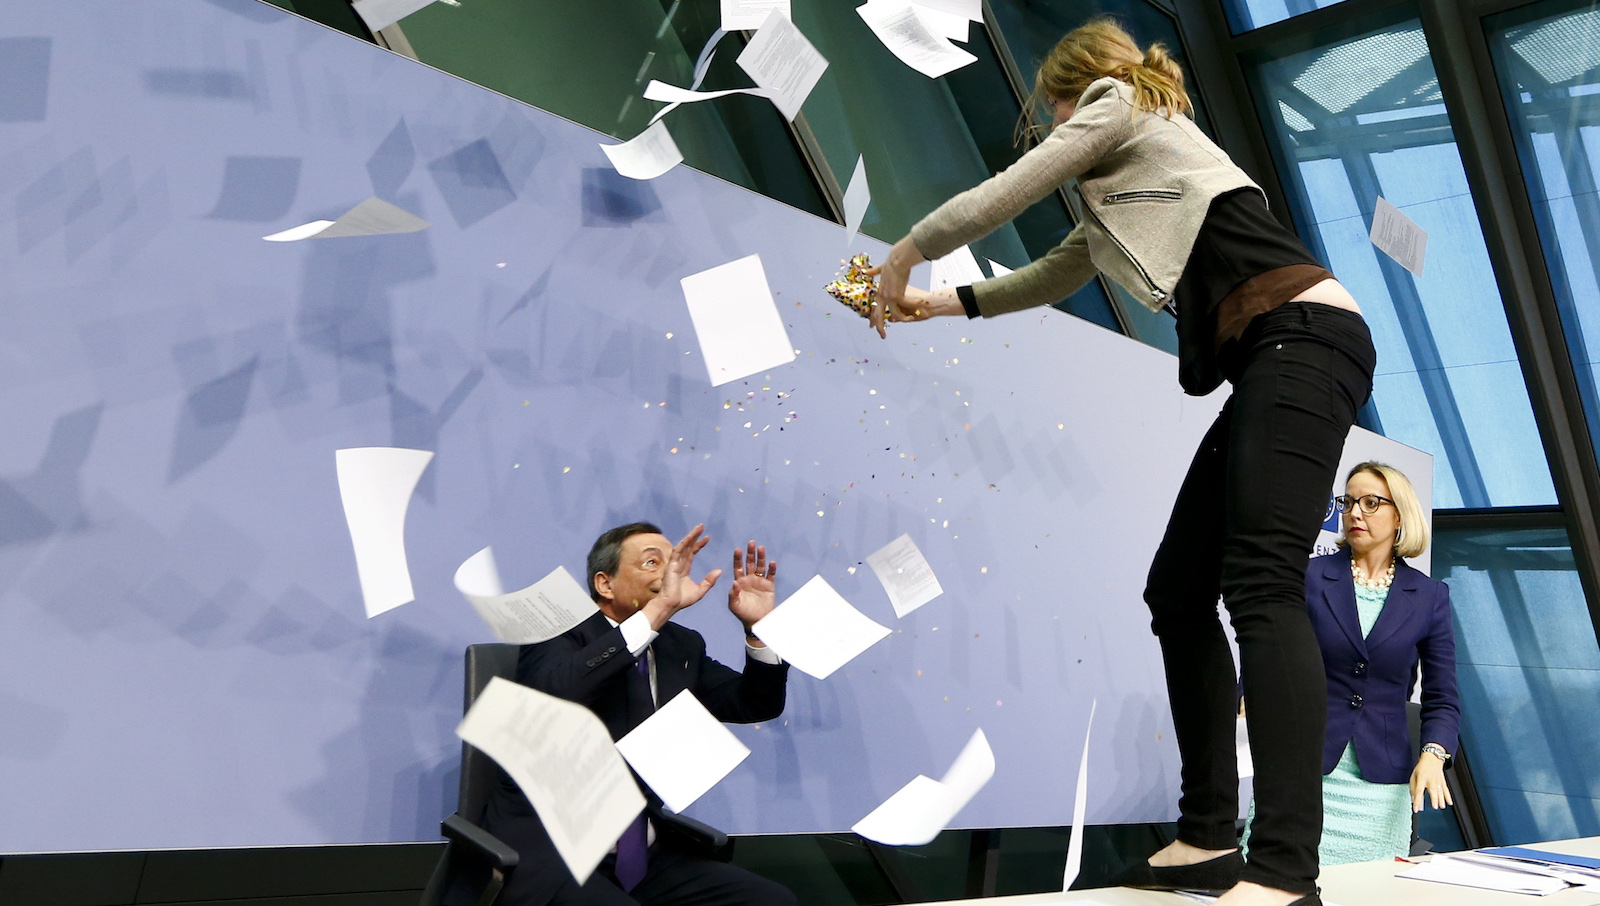 A protester jumps on the table in front of the European Central Bank President Mario Draghi during a news conference in Frankfurt, April 15, 2015. The news conference was disrupted on Wednesday when a woman in a black T-shirt jumped on the podium.   REUTERS/Ralph Orlowski  TPX IMAGES OF THE DAY - RTR4XFTD